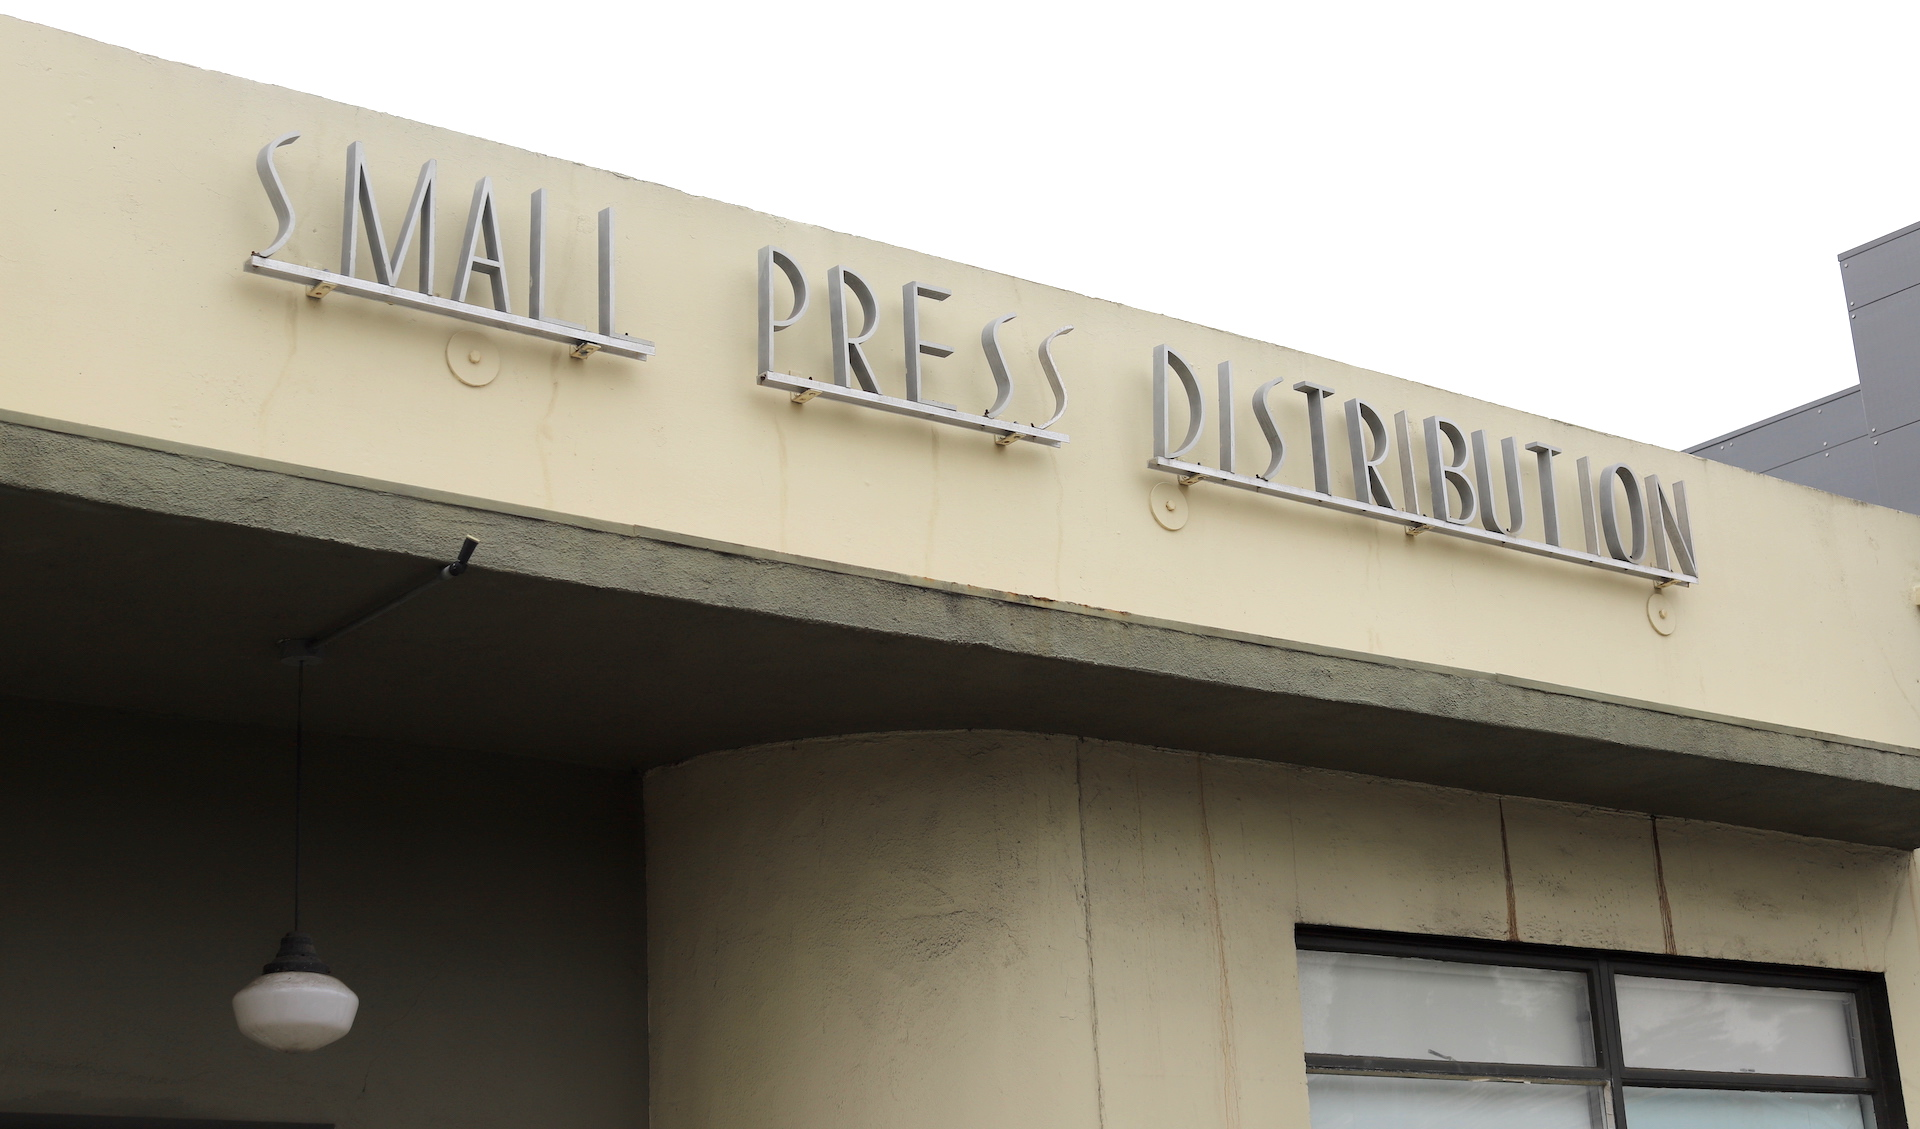 Small Press Distribution, founded in 1969, has operated out of this Berkeley warehouse since 1995.